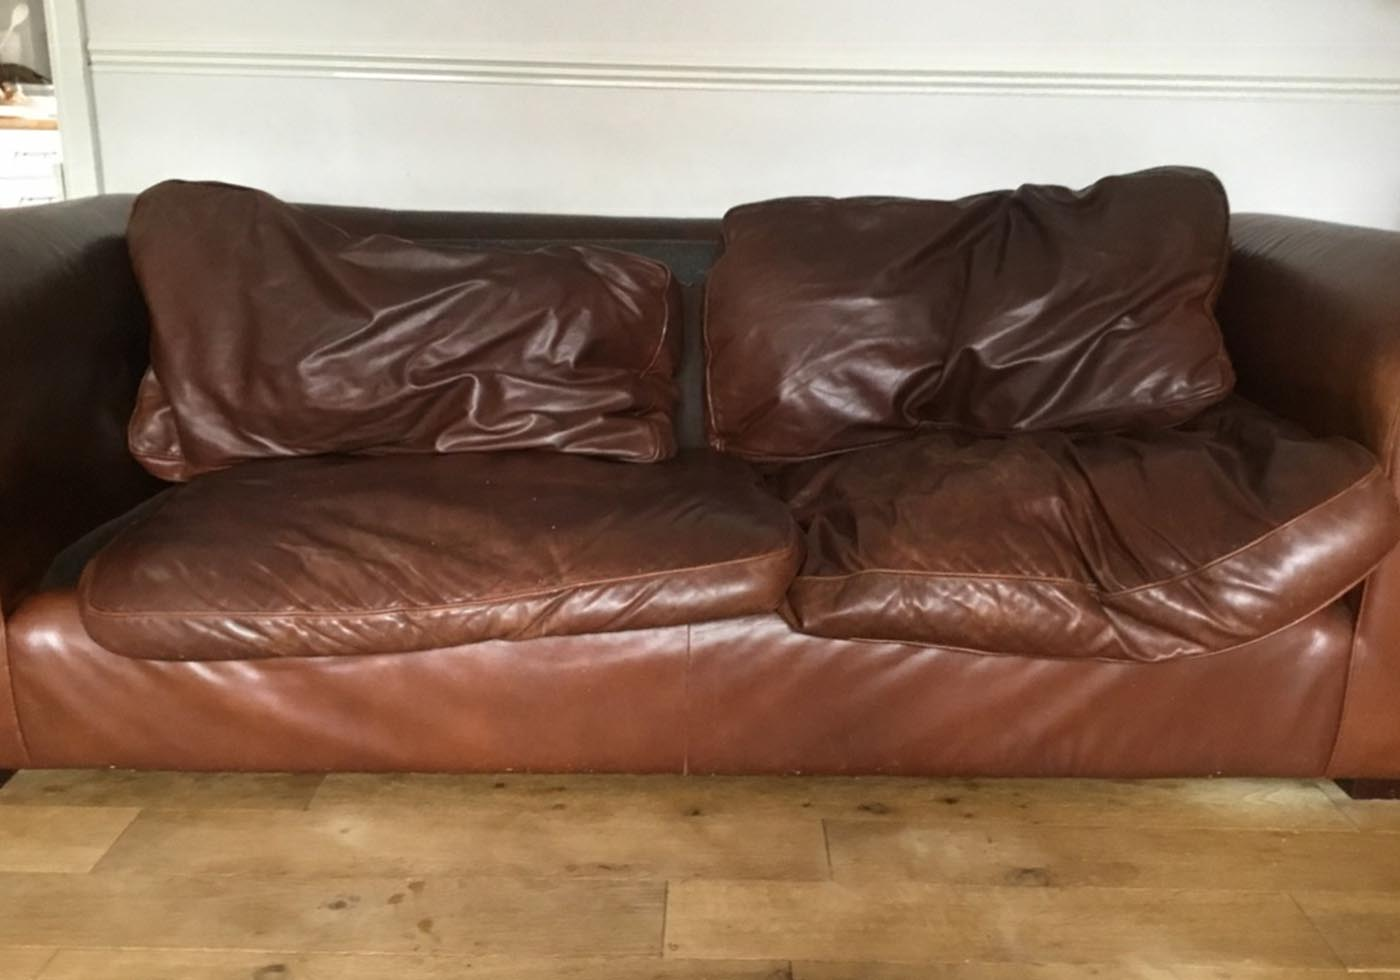 sagging sofa cushions